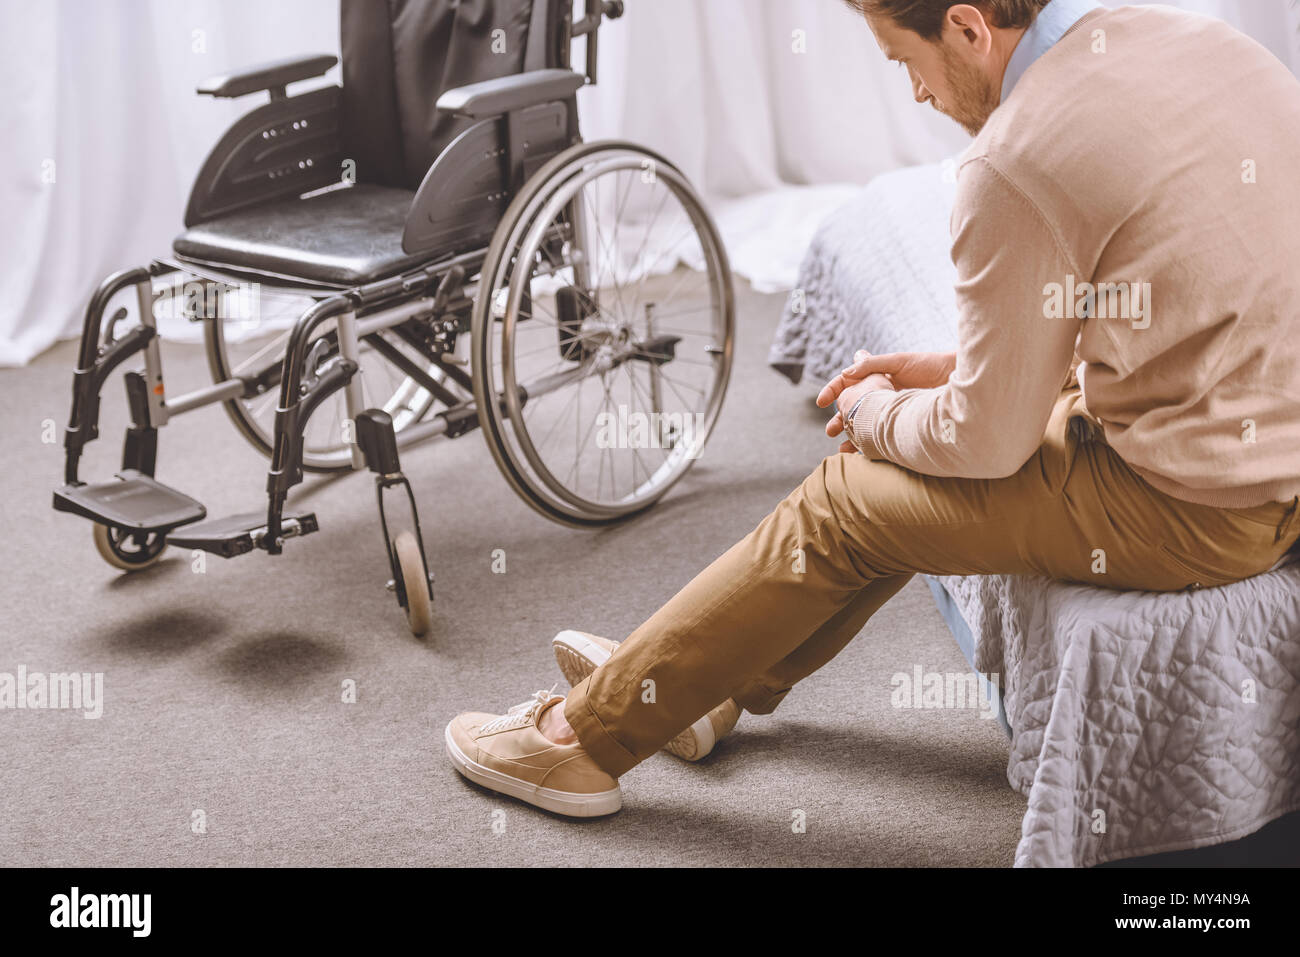 Bed Wheelchair Sad Man With Disability Sitting On Bed Wheelchair Standing Near